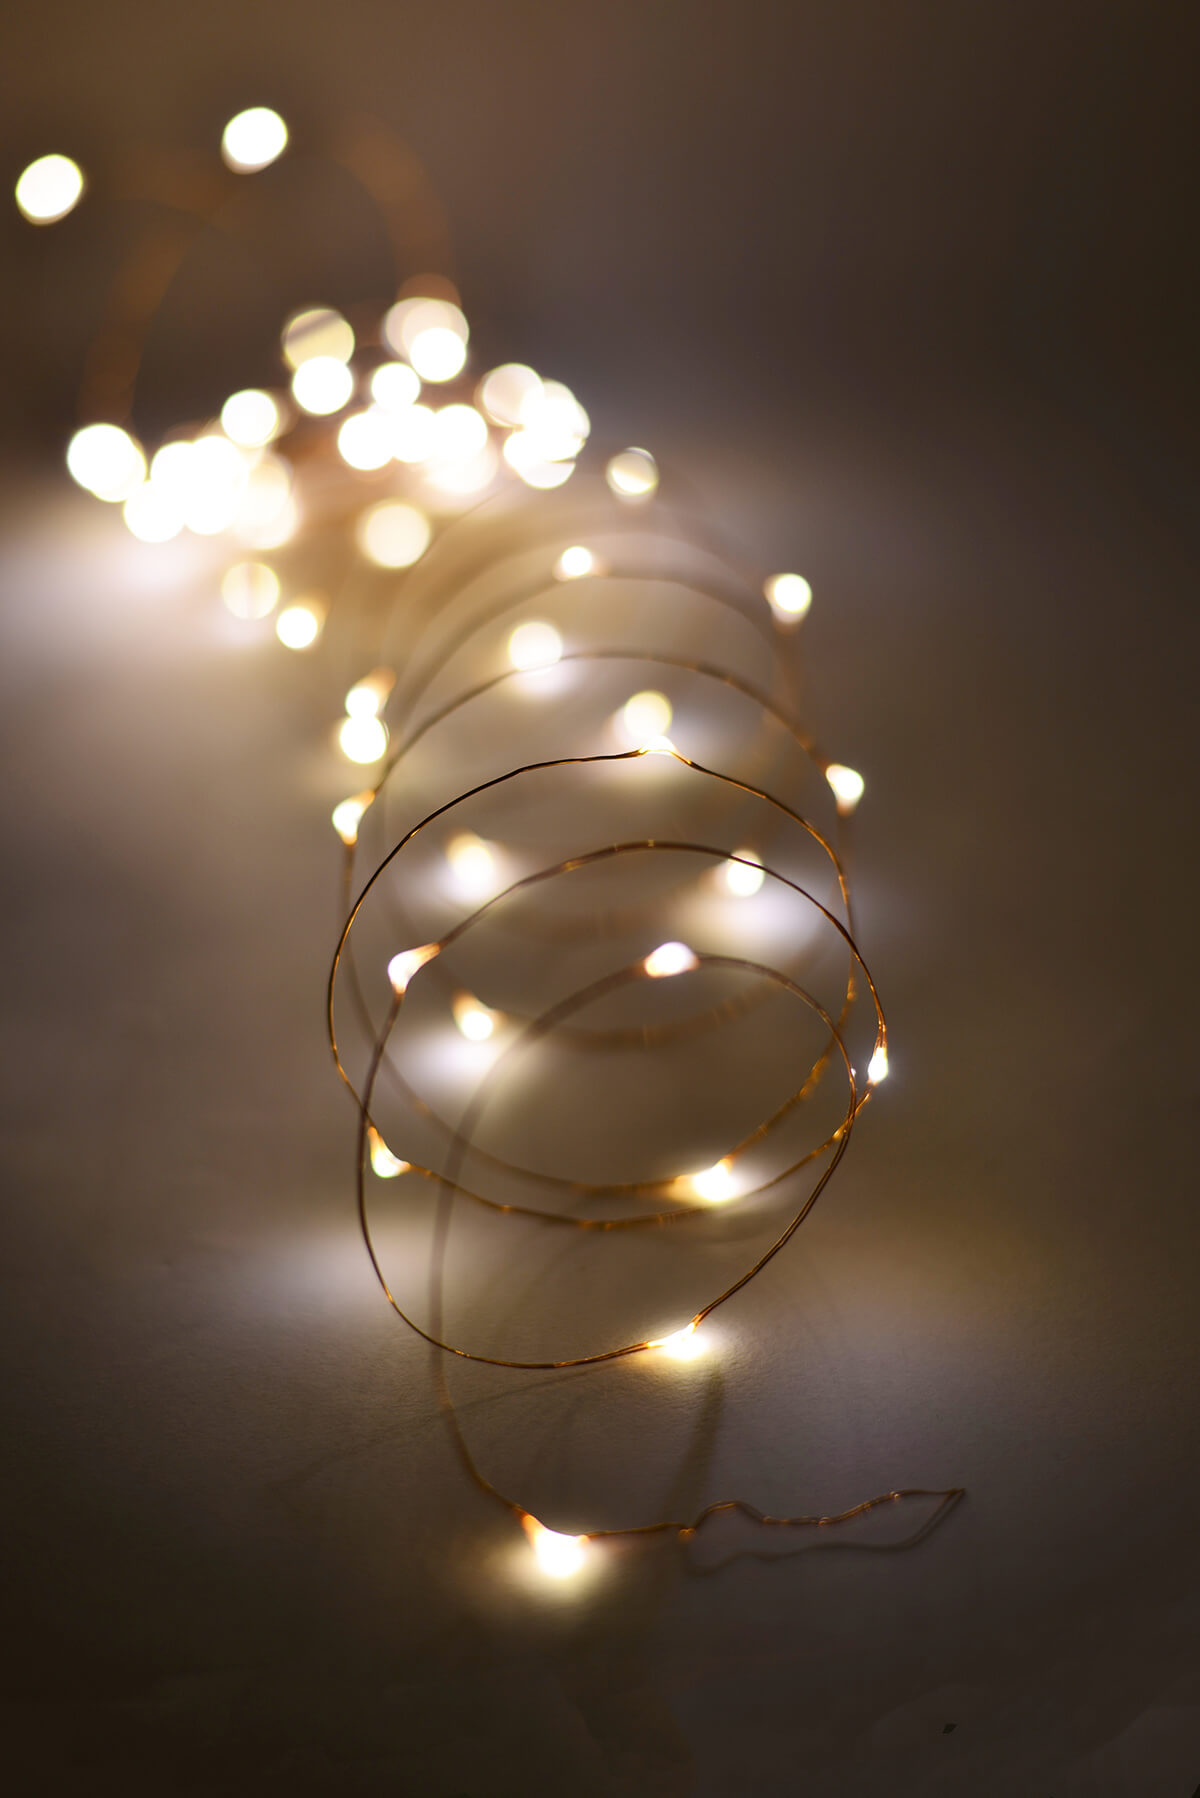 Outdoor Fairy Lights 20 FT Battery Op. 60 Warm White LED Light Strings Copper Wire